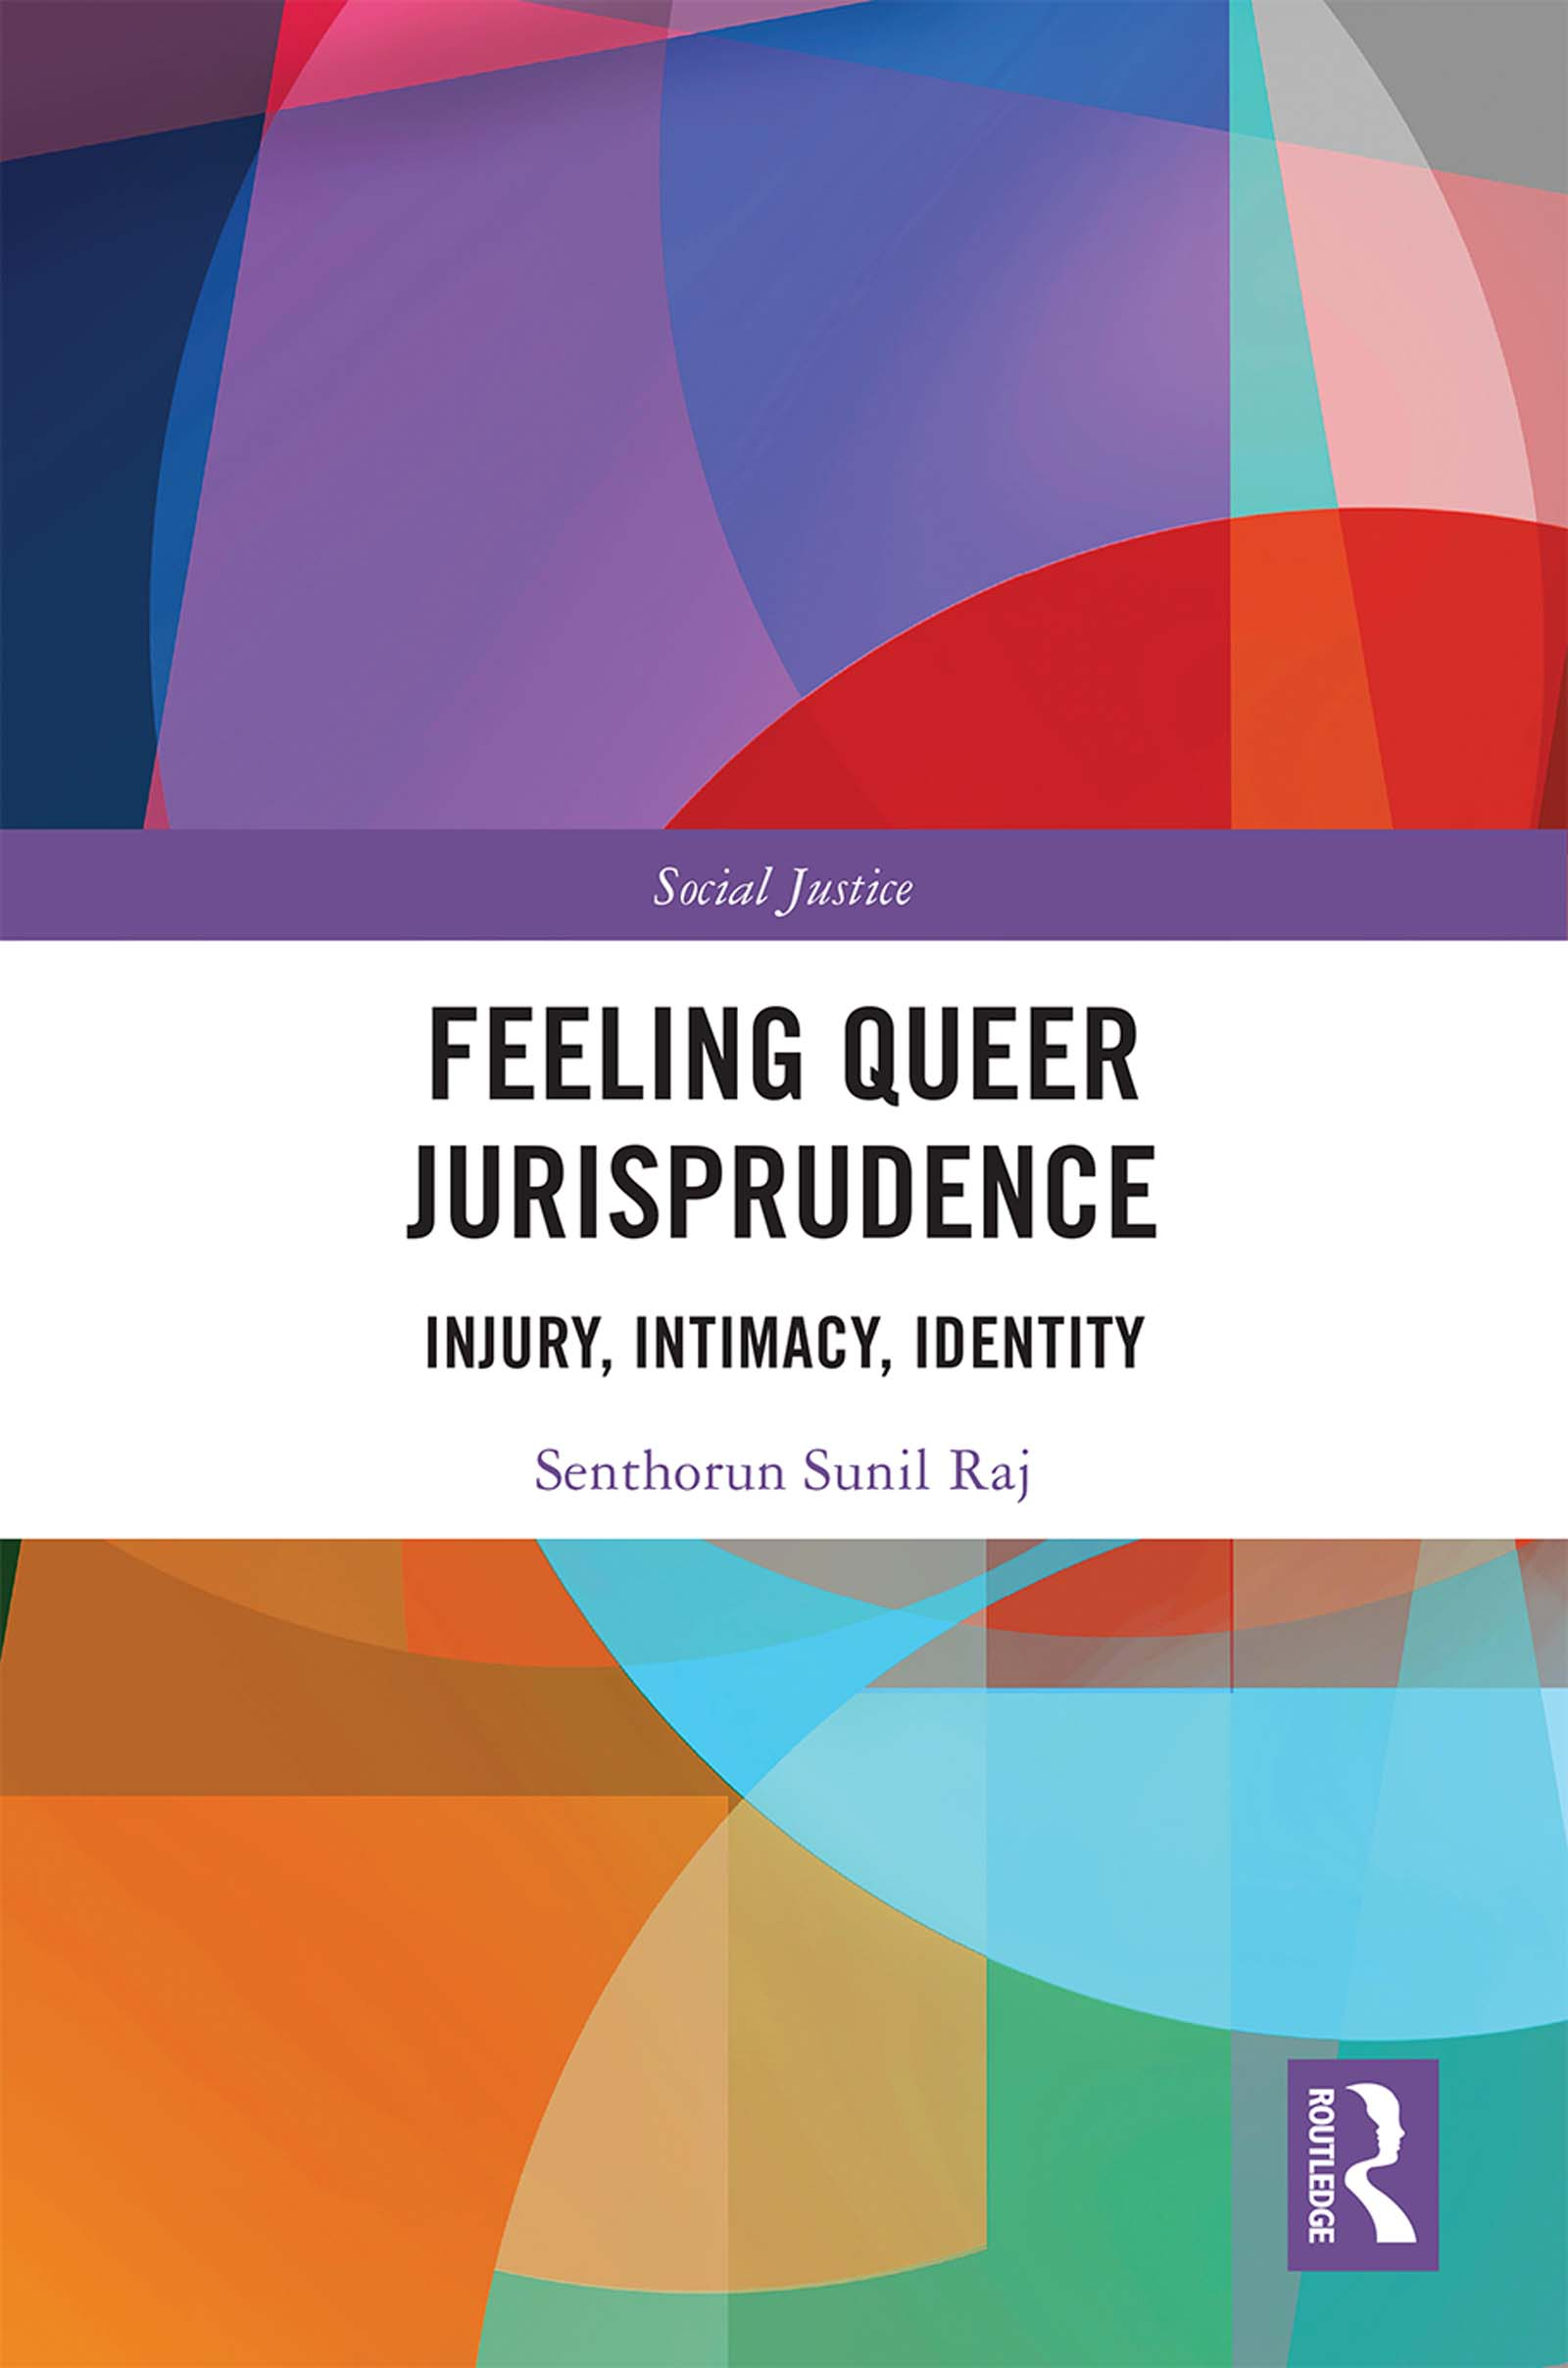 Feeling Queer Jurisprudence: Injury, Intimacy, Identity book cover